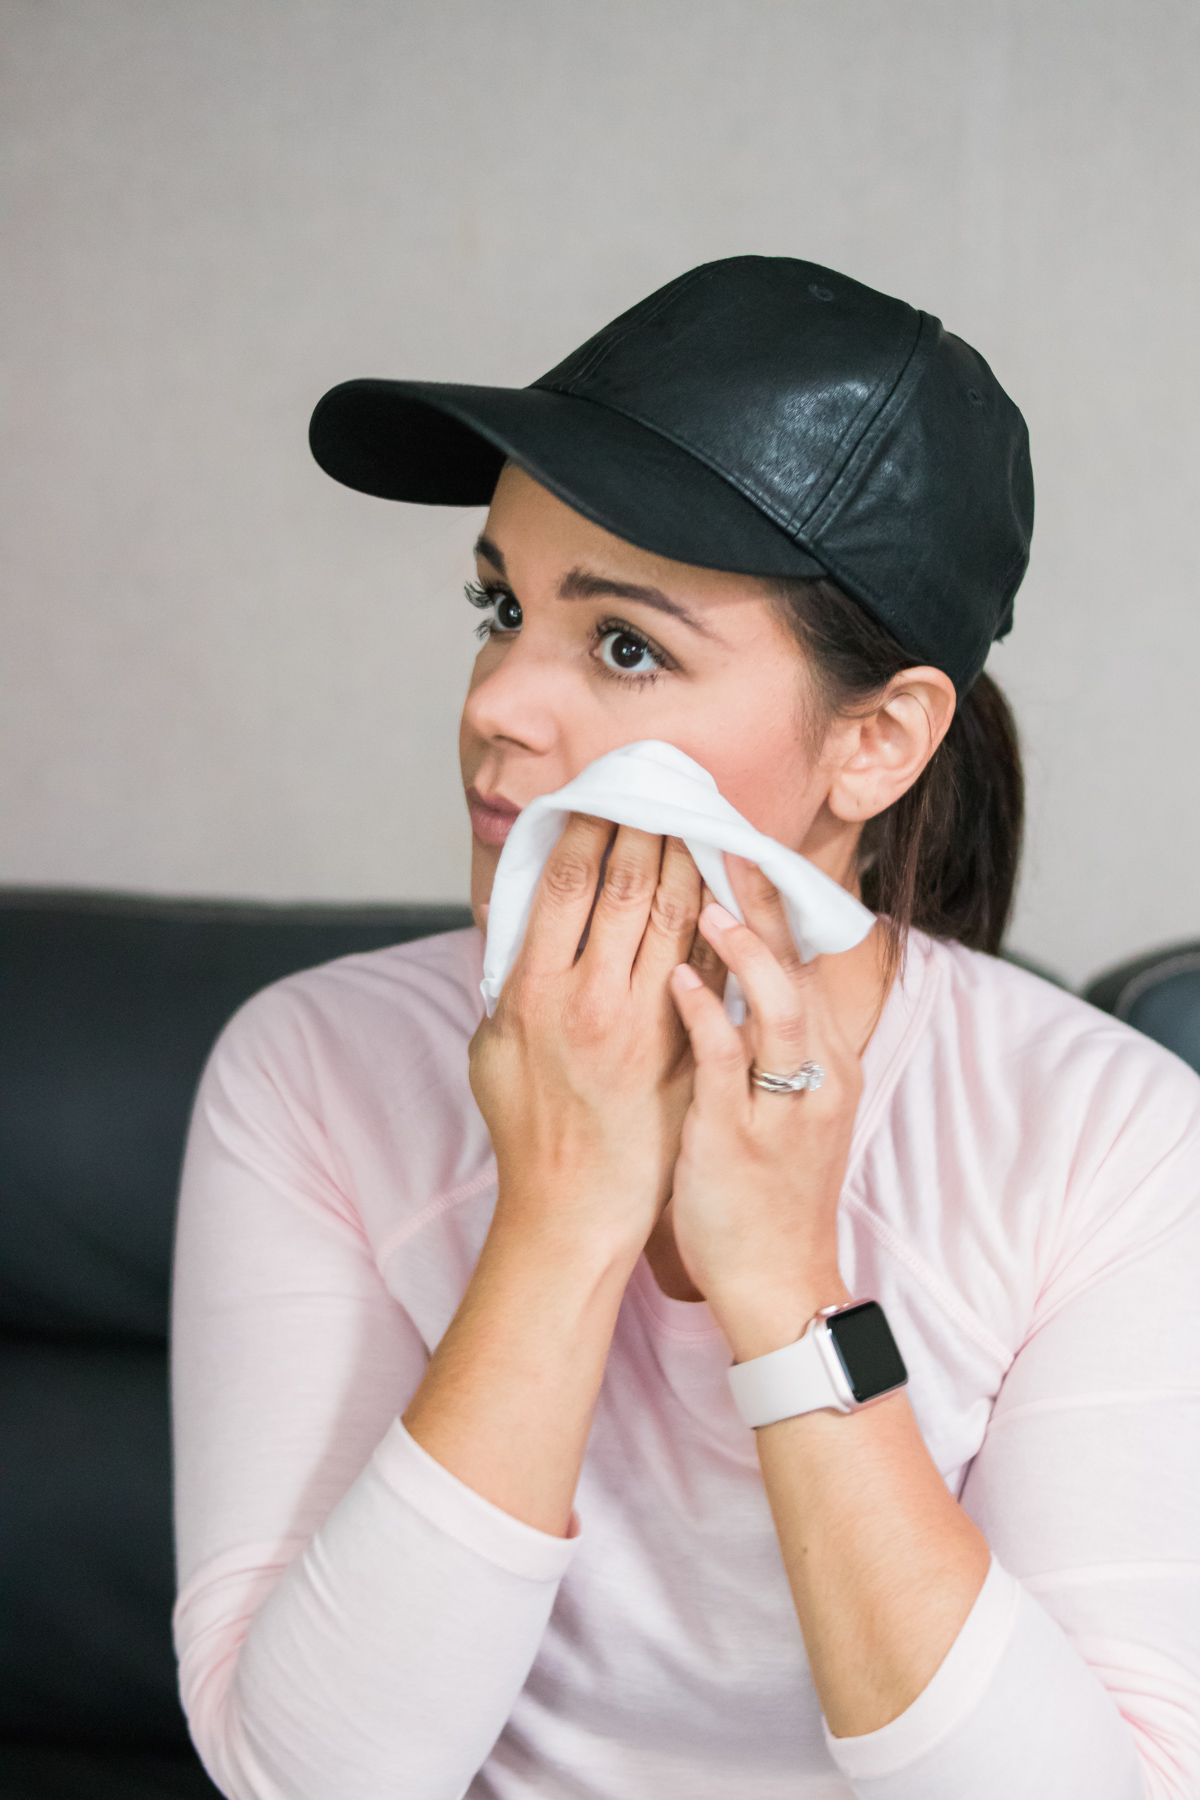 woman removing makeup with Neutrogena makeup remover cloth